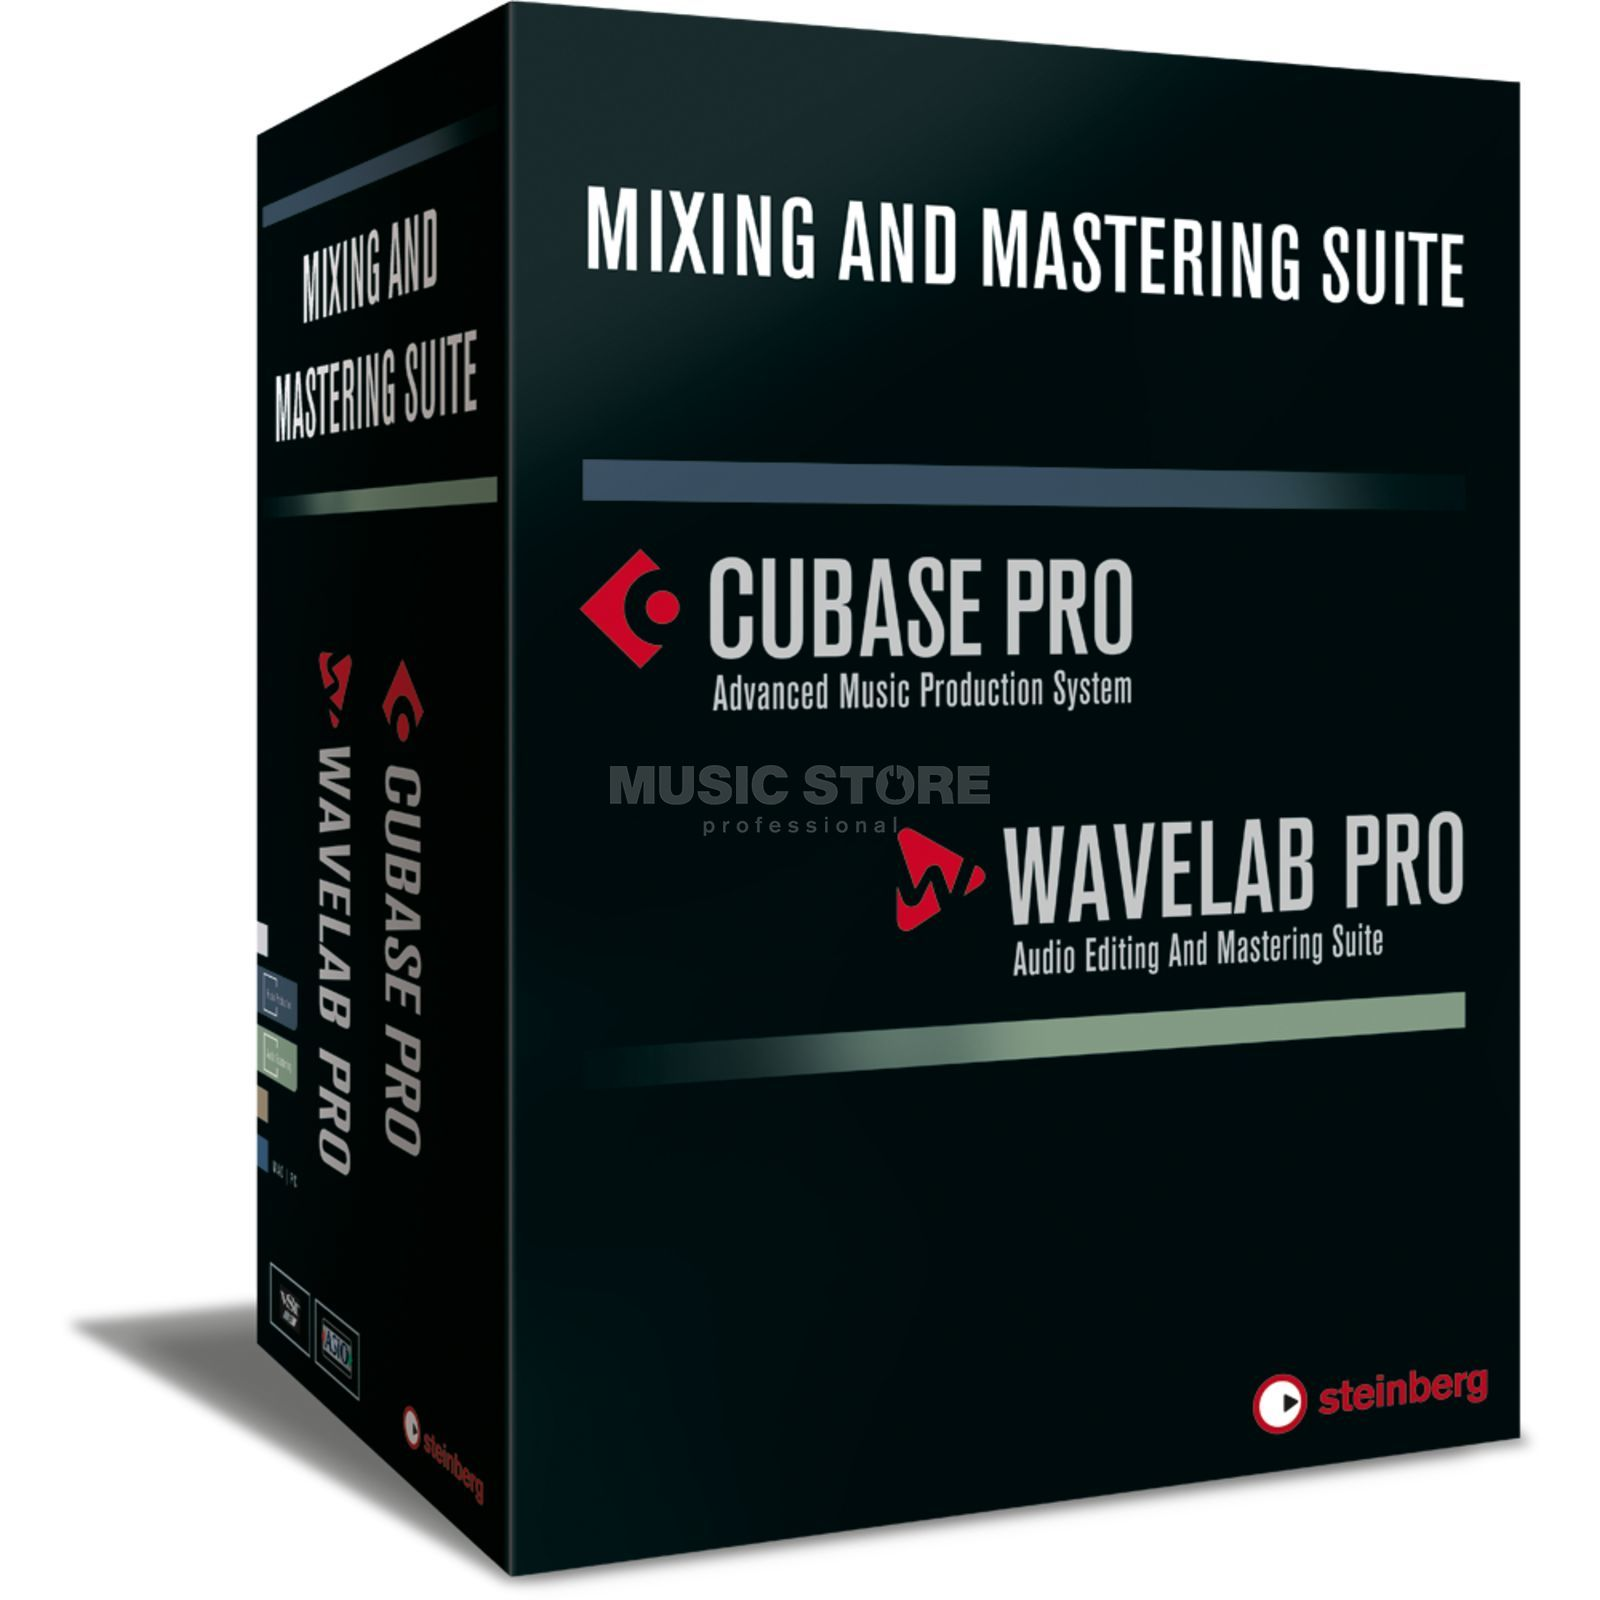 Steinberg Mixing and Mastering Suite Product Image